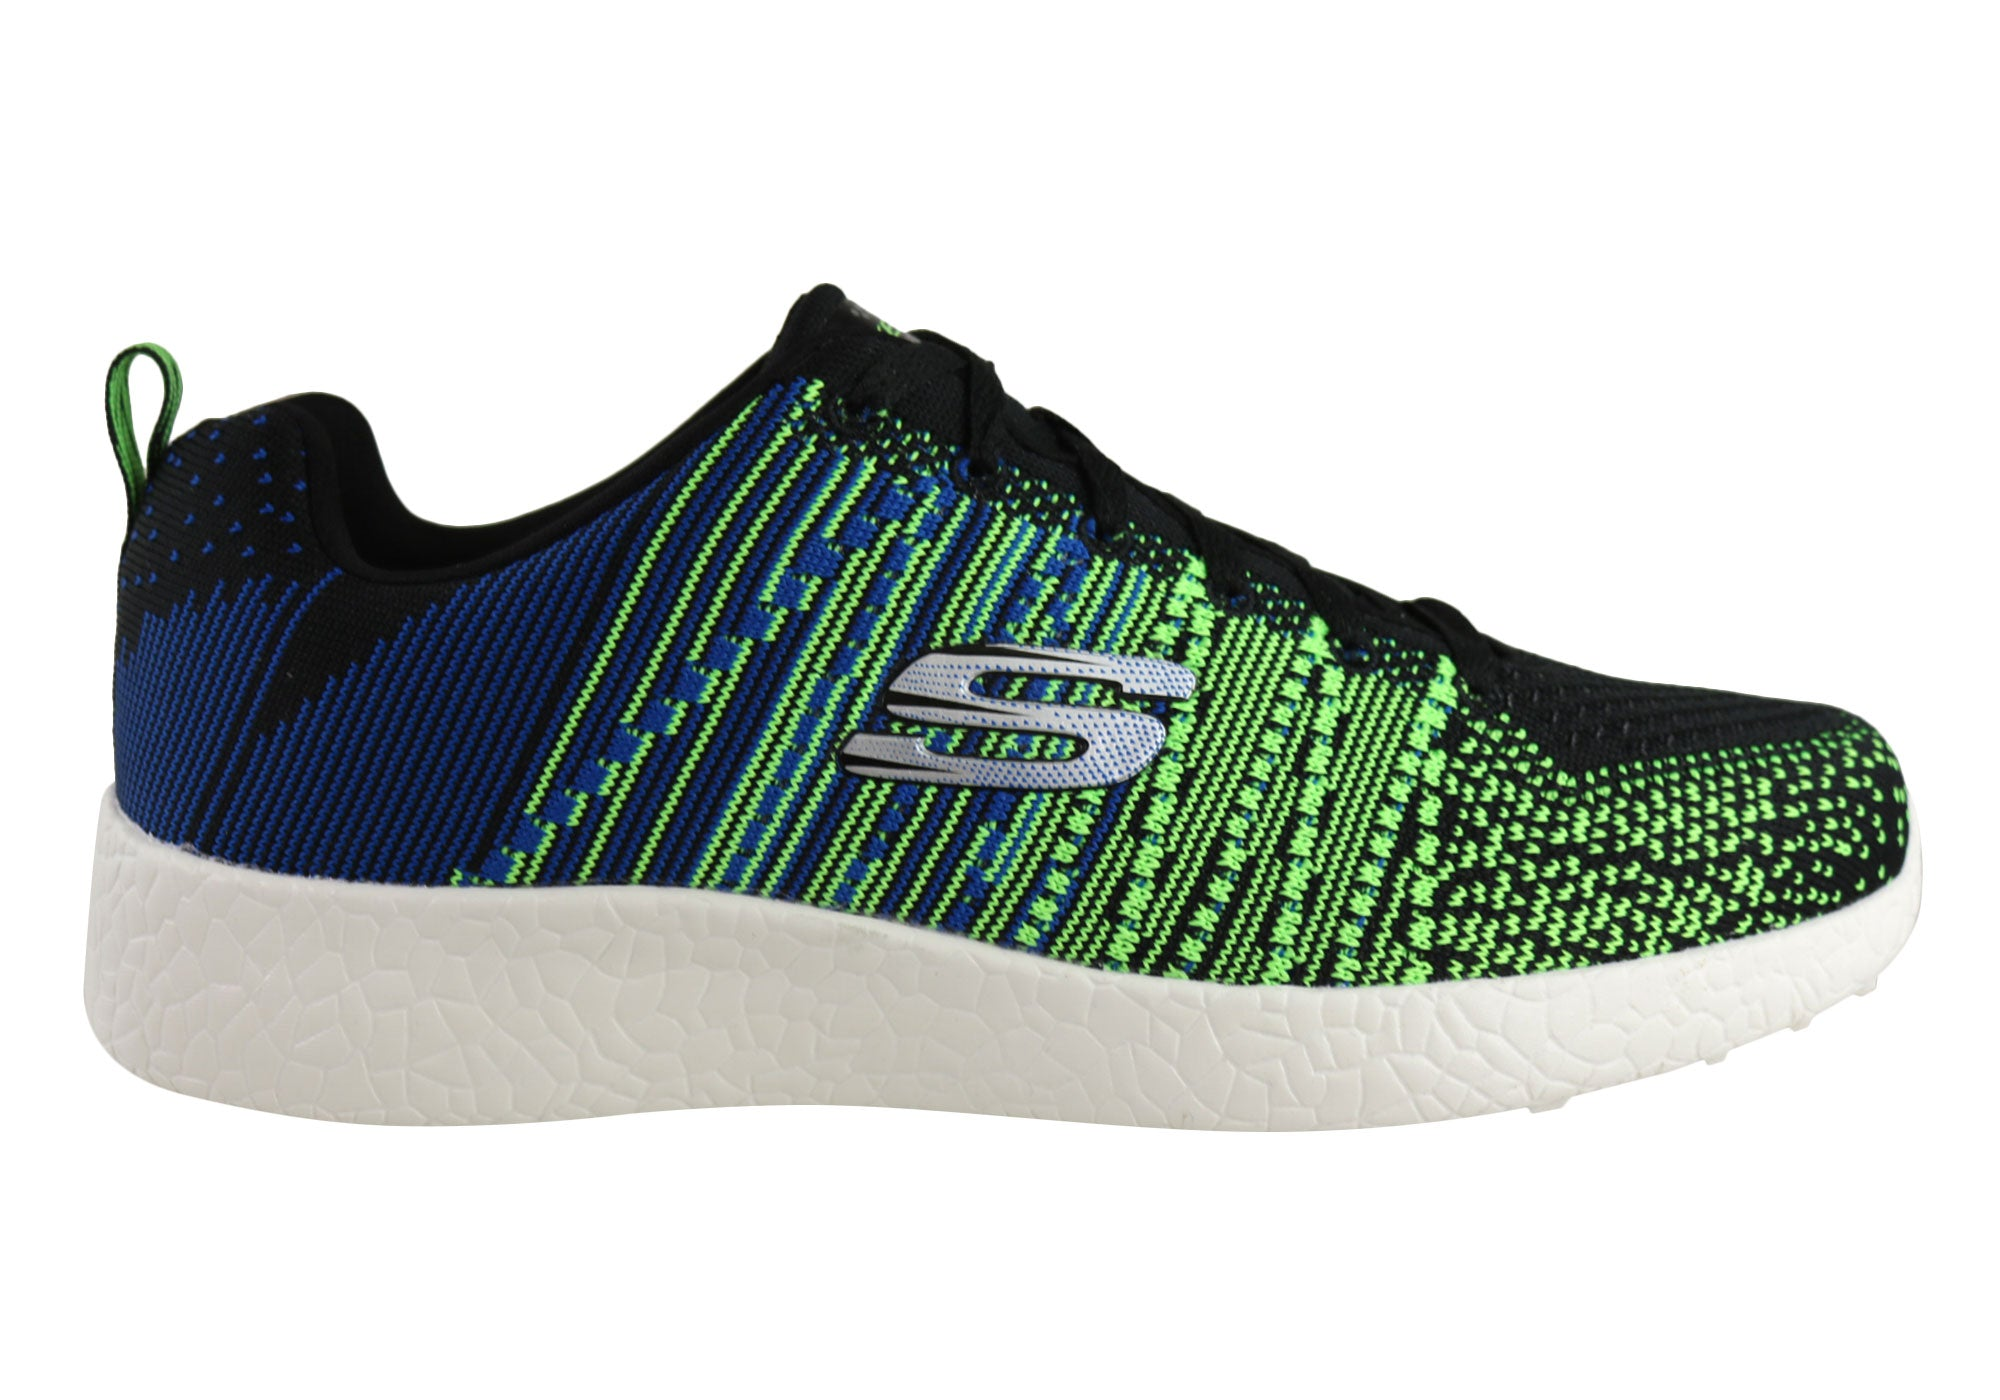 4efa609f0448 Details about NEW SKECHERS MENS BURST IN THE MIX COMFORTABLE MEMORY FOAM  SPORT SHOES